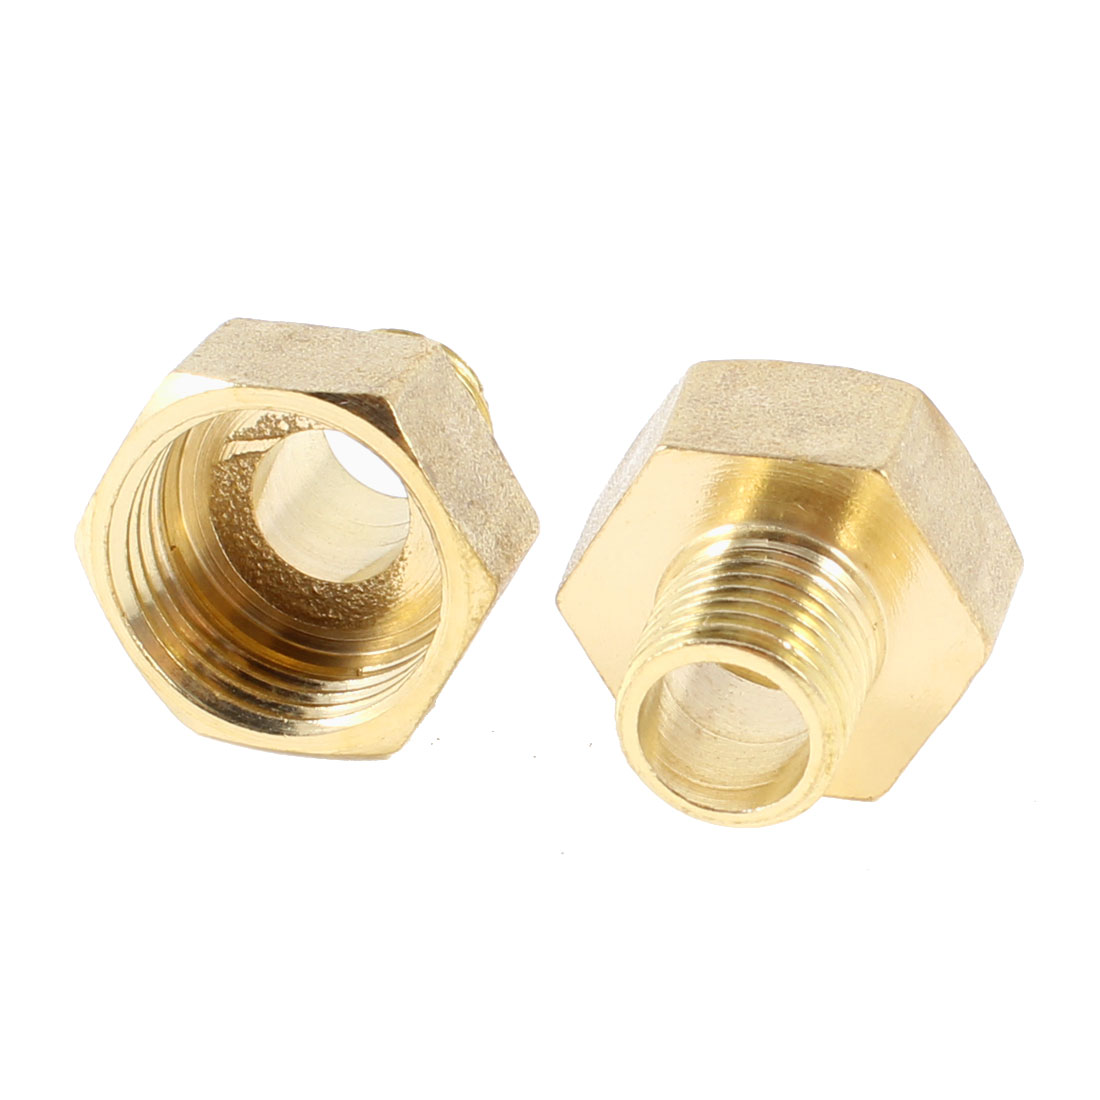 "2 Pcs 1/4""PT x 1/2"" NPT Male to Female Thread Hex Bushing Pipe Couplings Adapter"